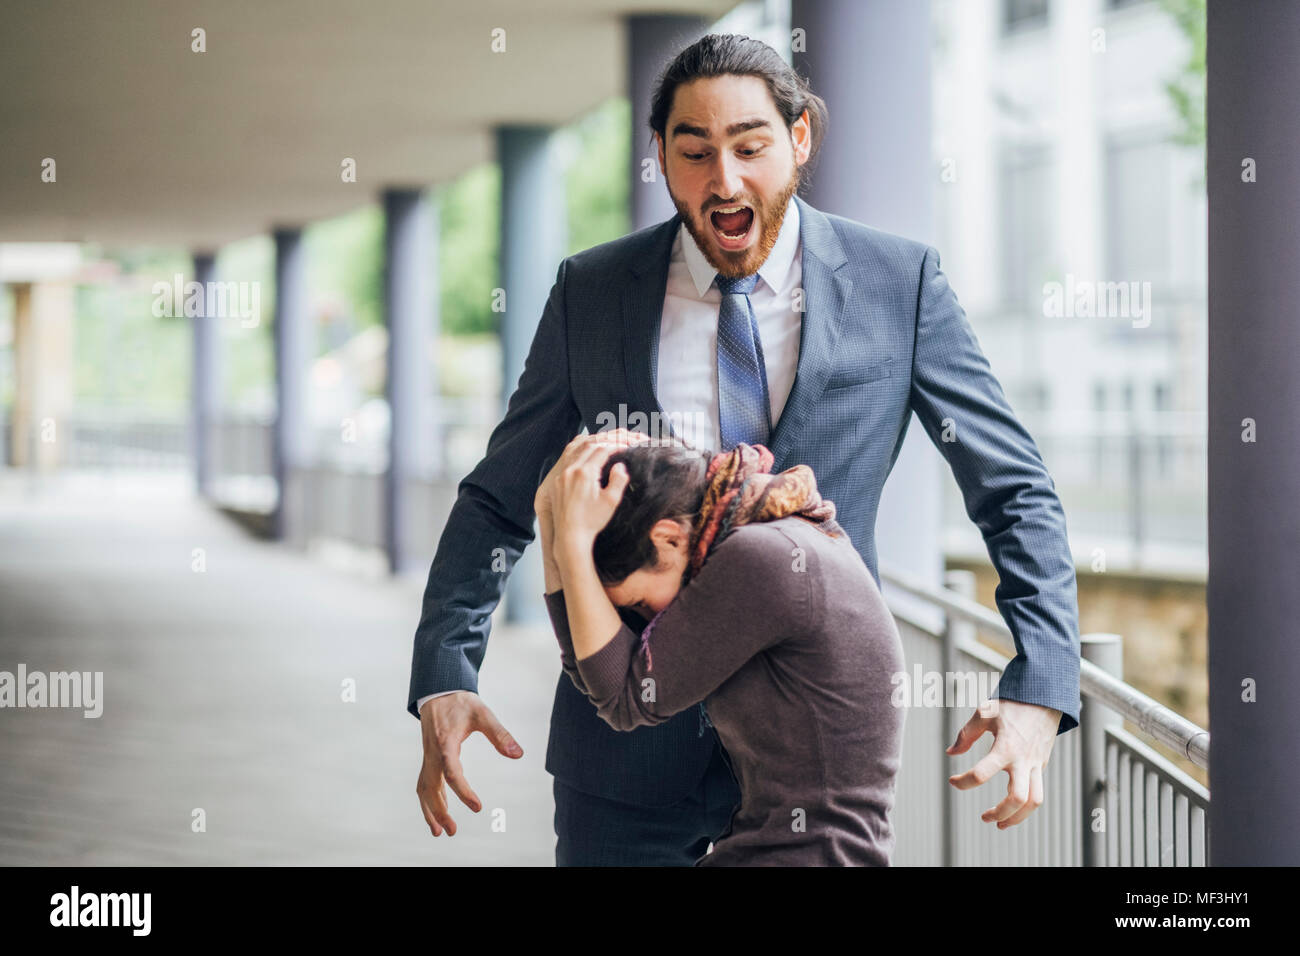 Businessman screaming at woman - Stock Image